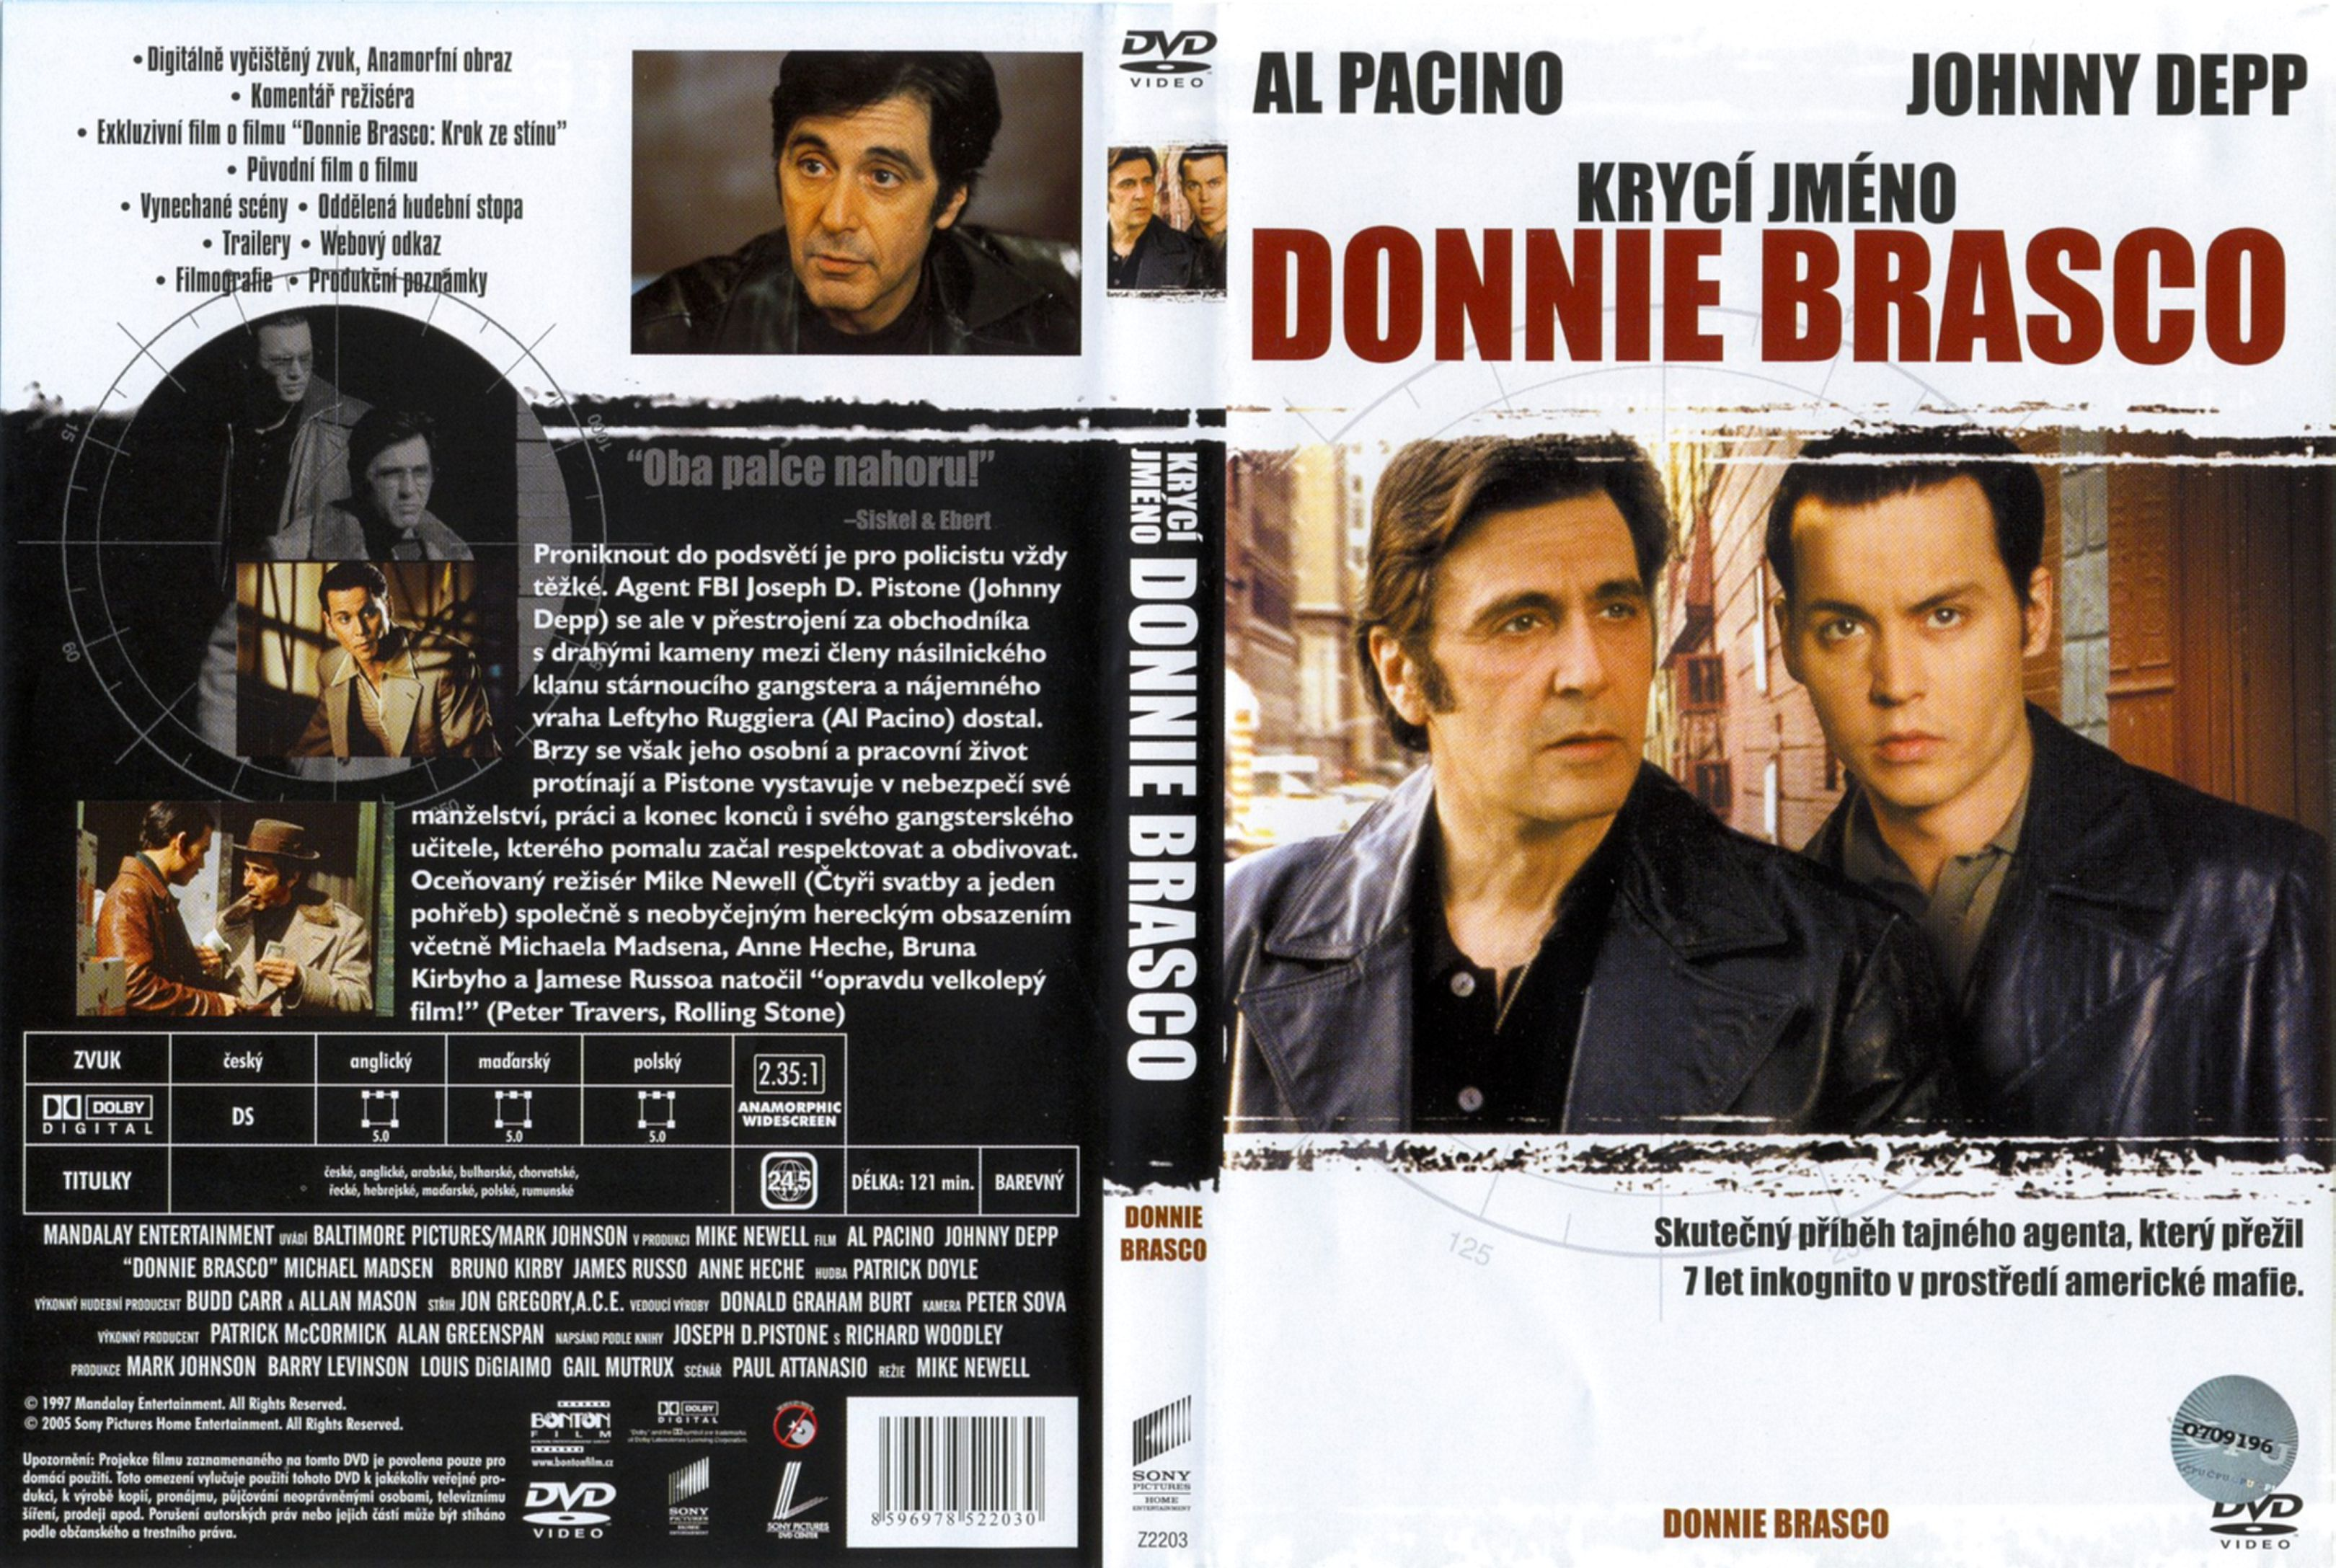 a review of donnie brasco a mobster movie by mike newell